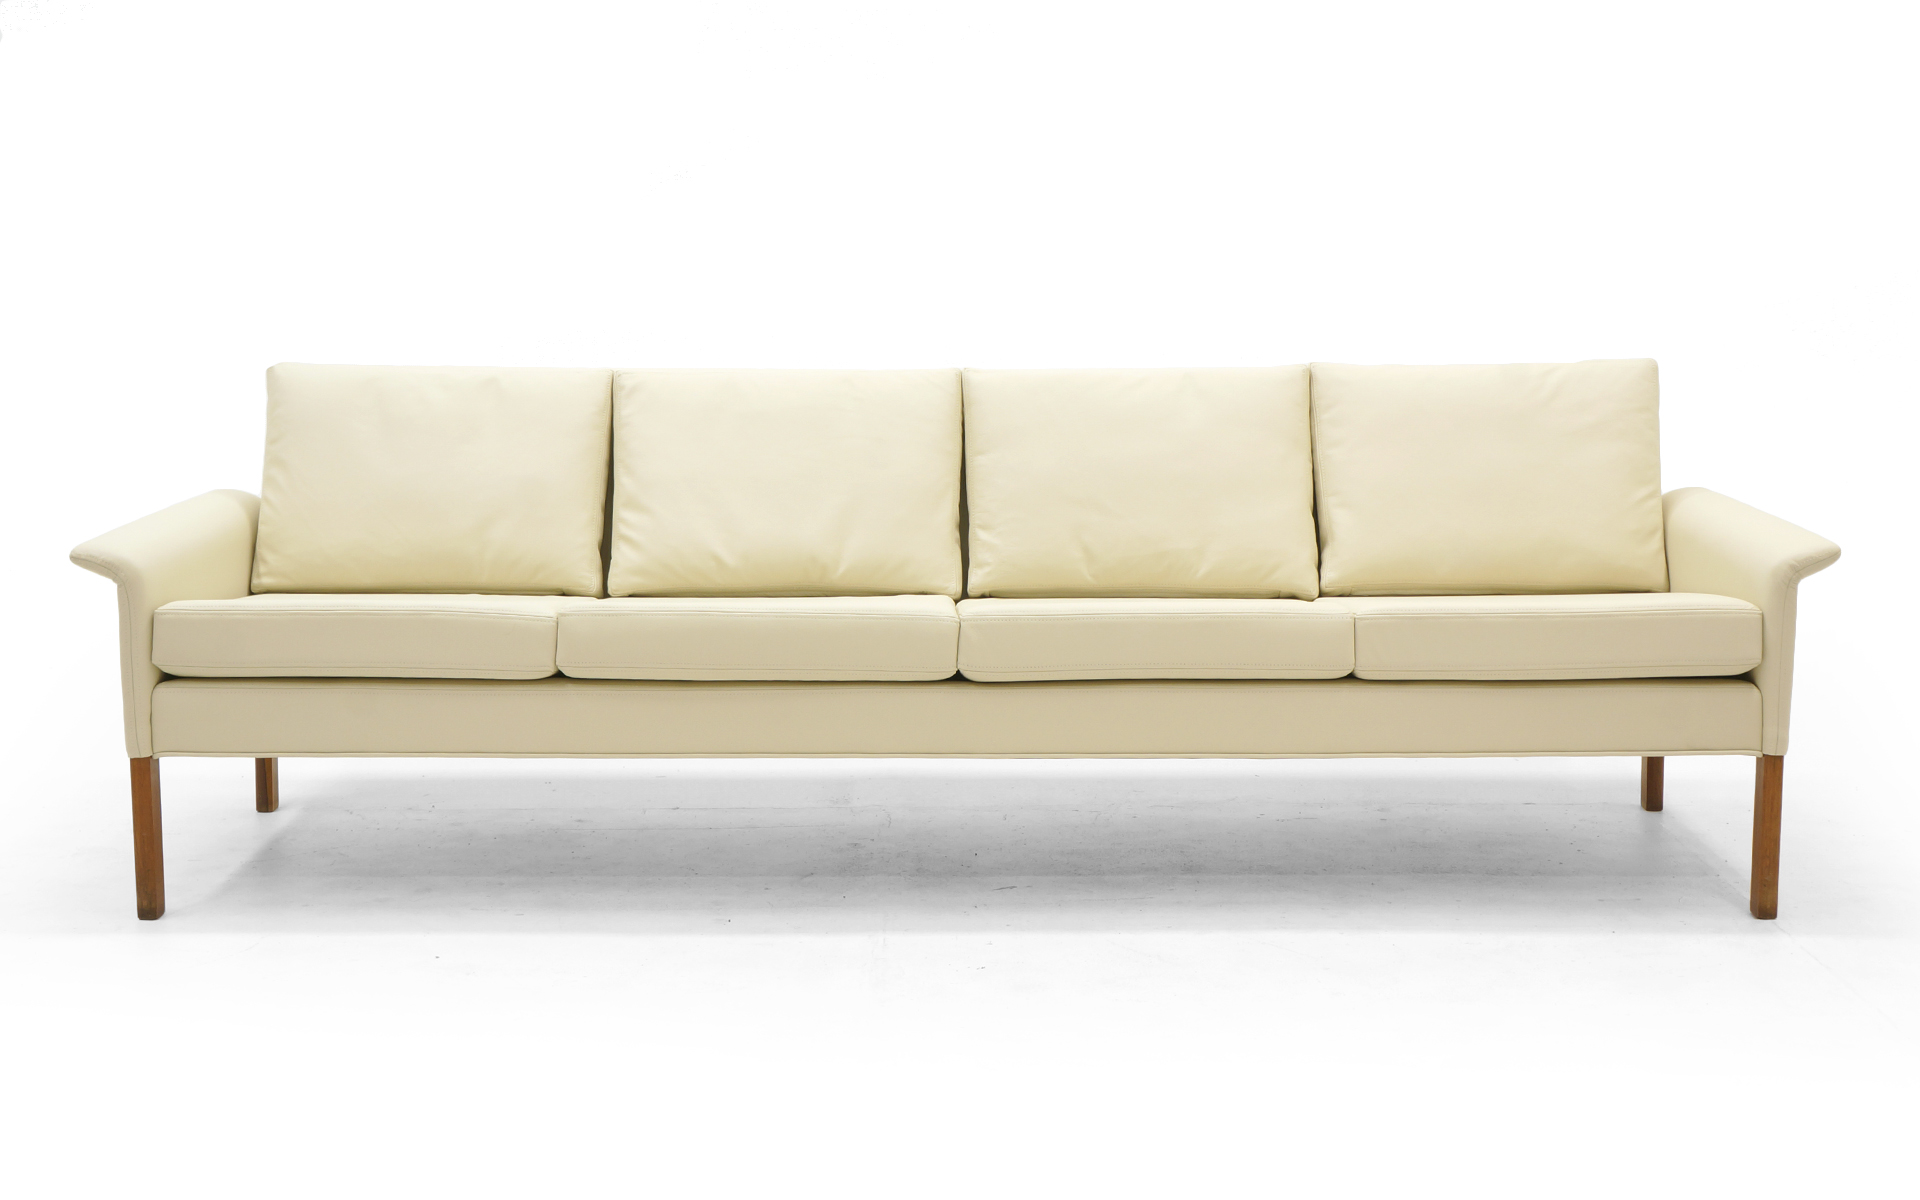 Retro Sofa Leather Four Seat Sofa By Hans Olsen White Ivory Leather With Rosewood Legs Perfect